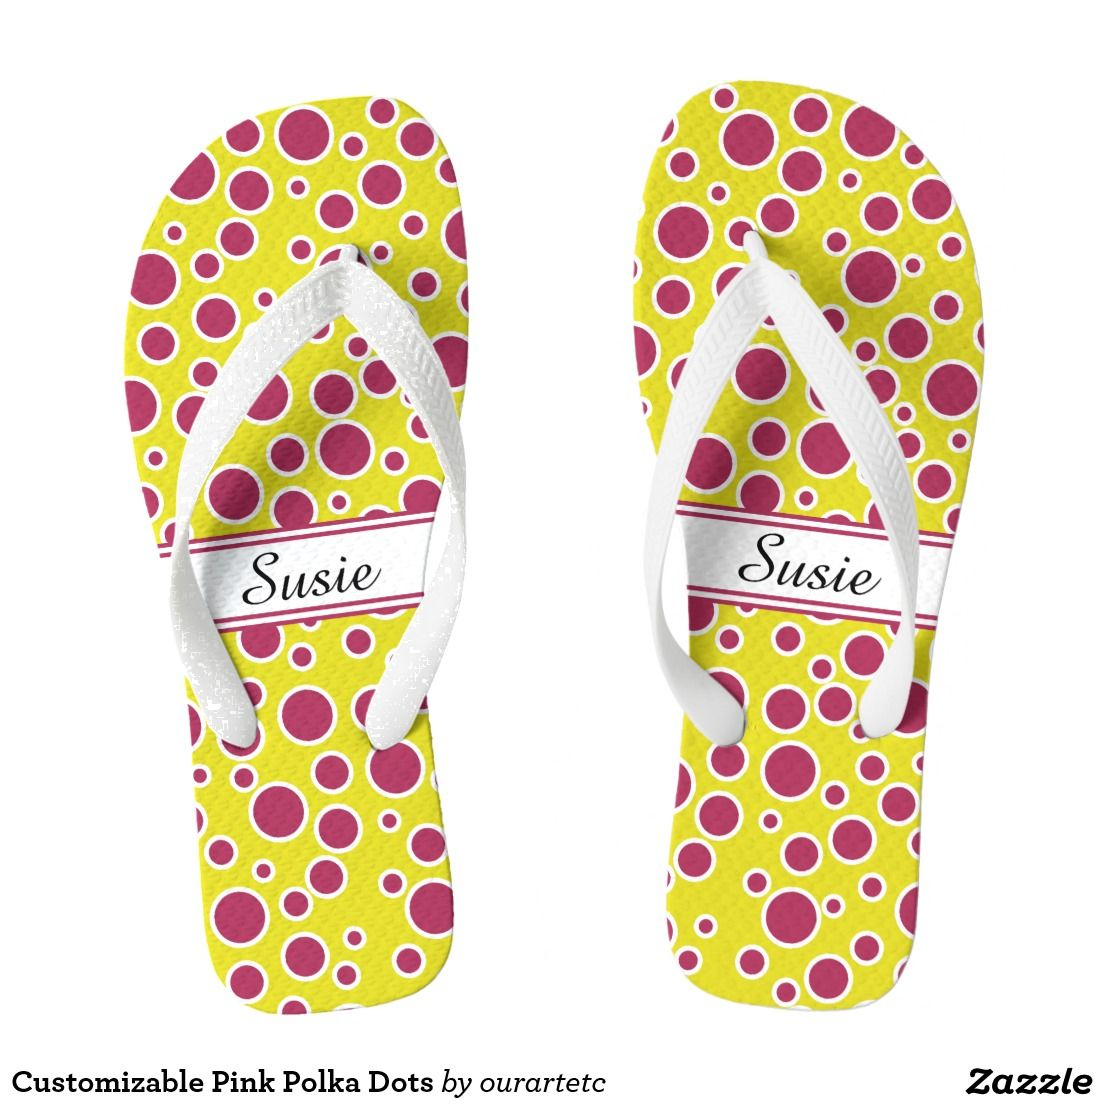 Customizable Pink Polka Dots